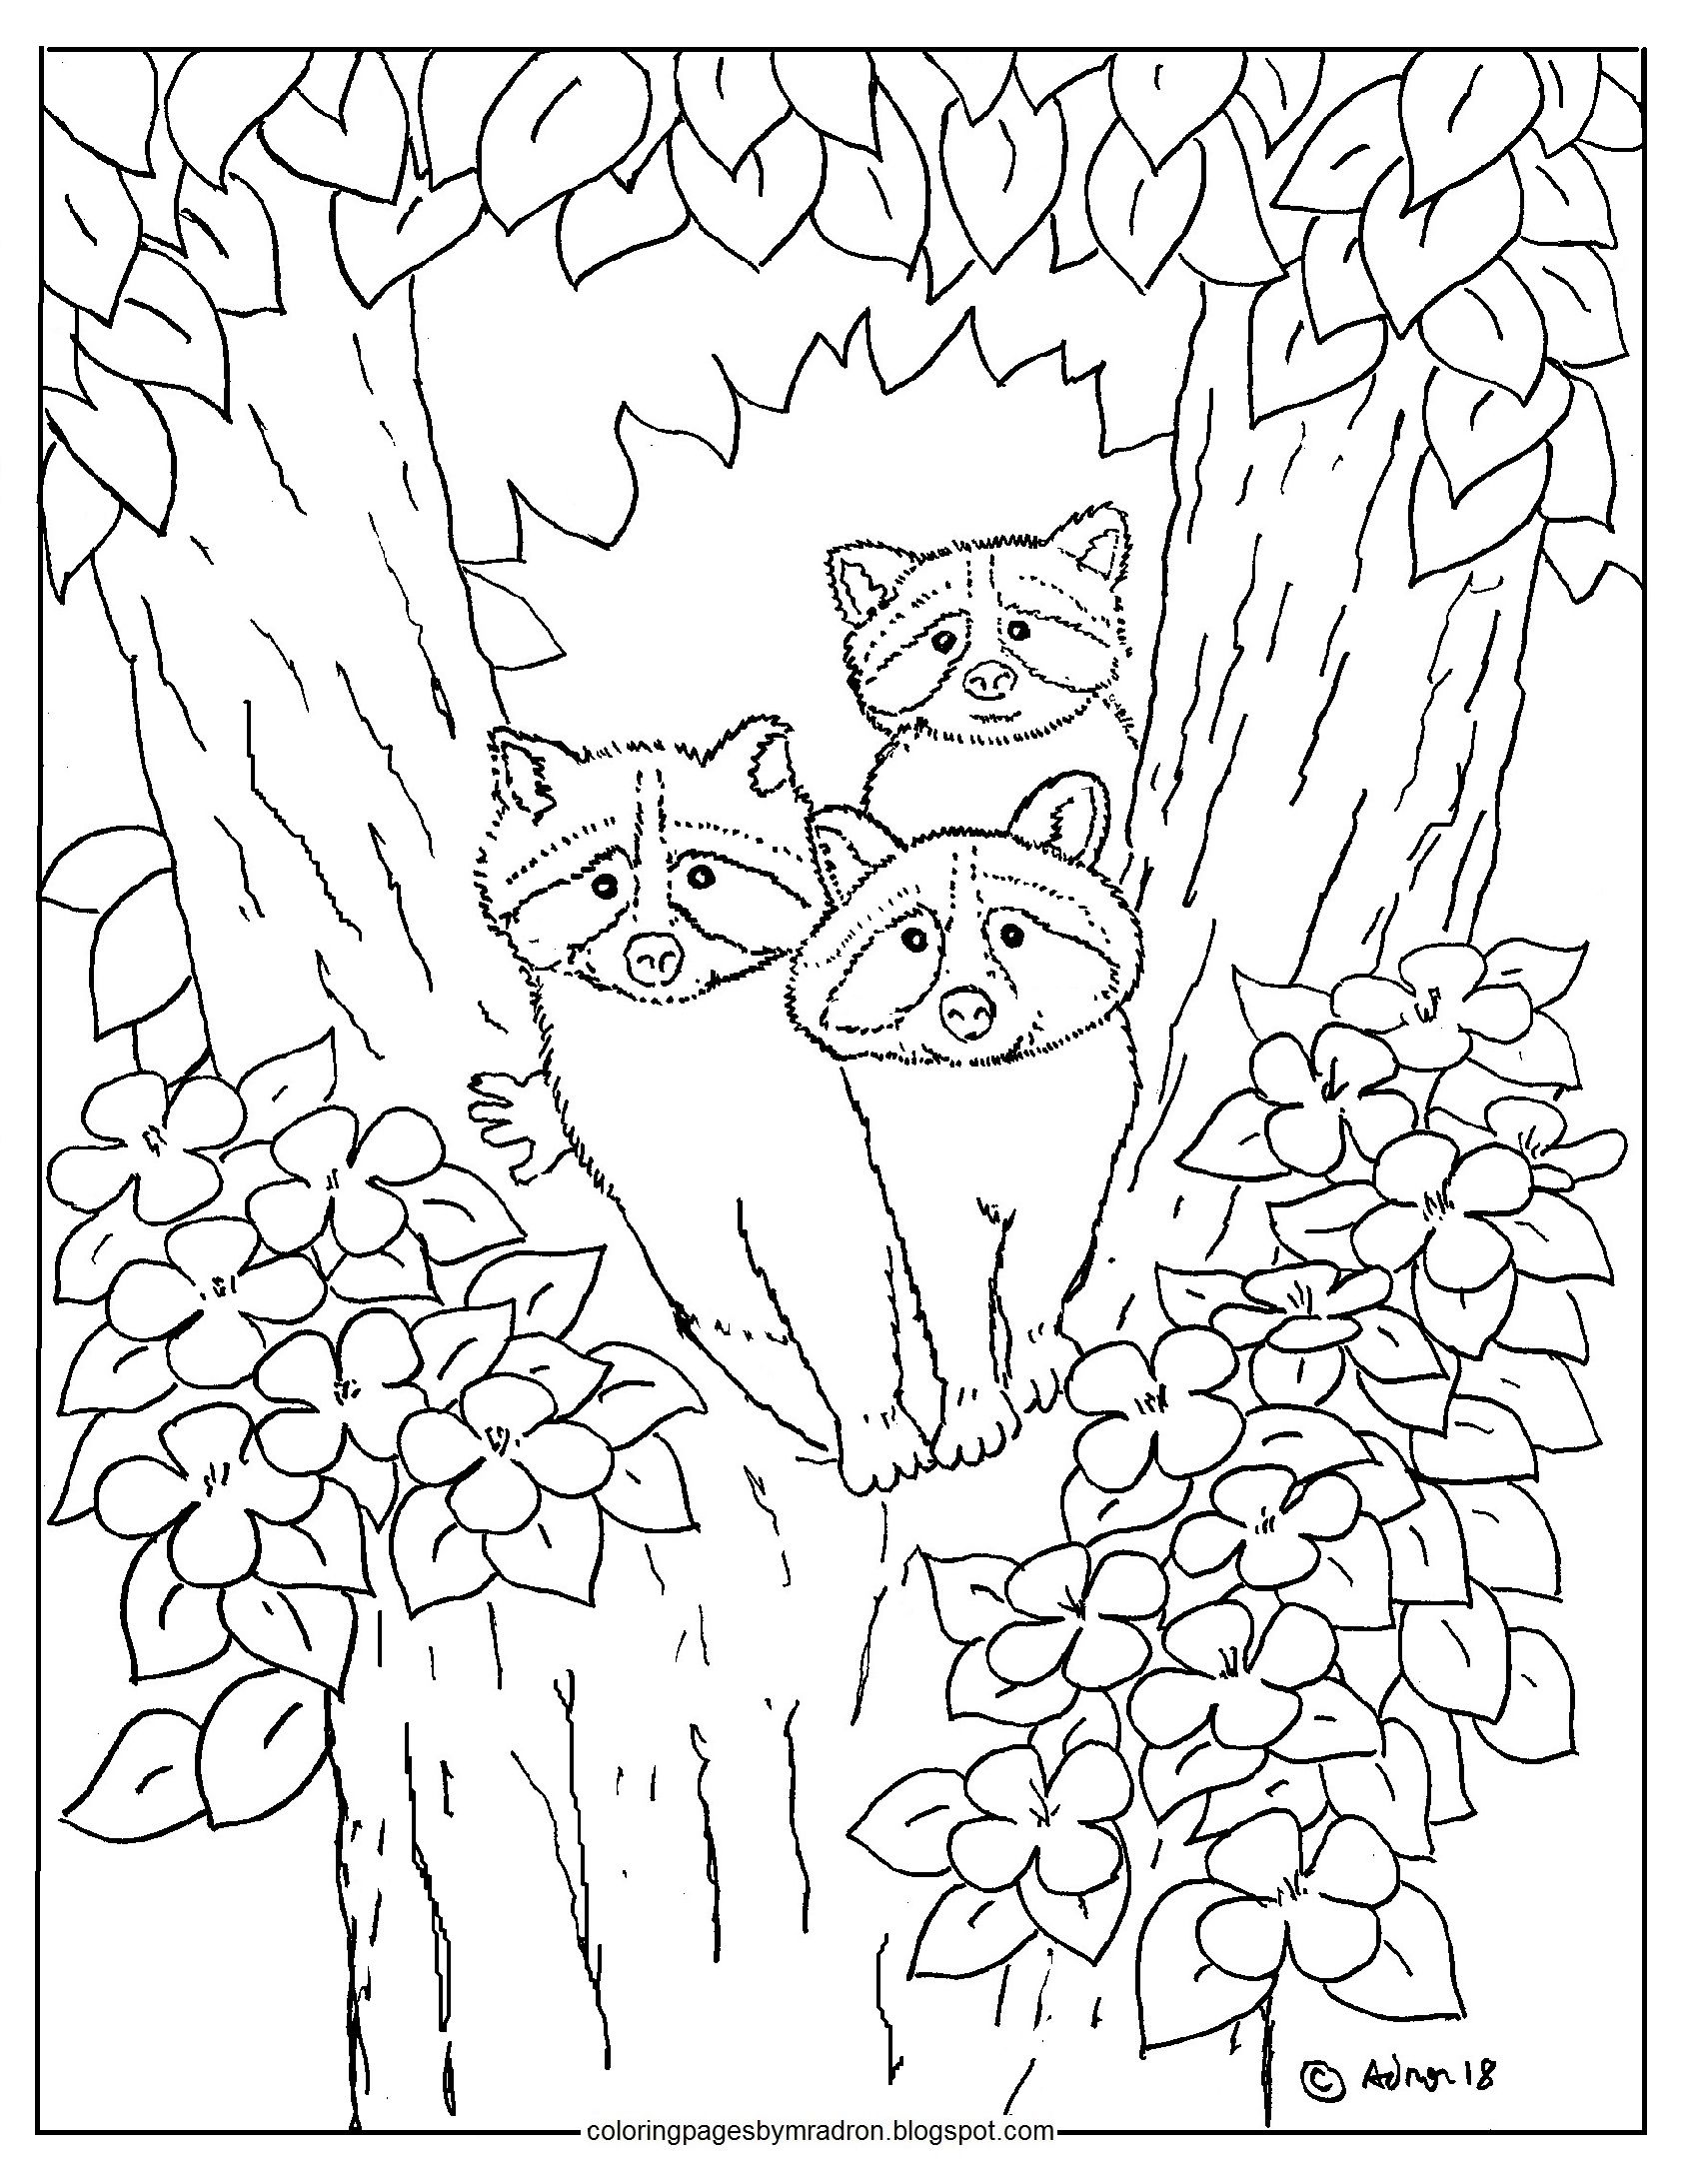 baby raccoon coloring page printable baby raccoons in a tree hundreds more at my coloring baby page raccoon